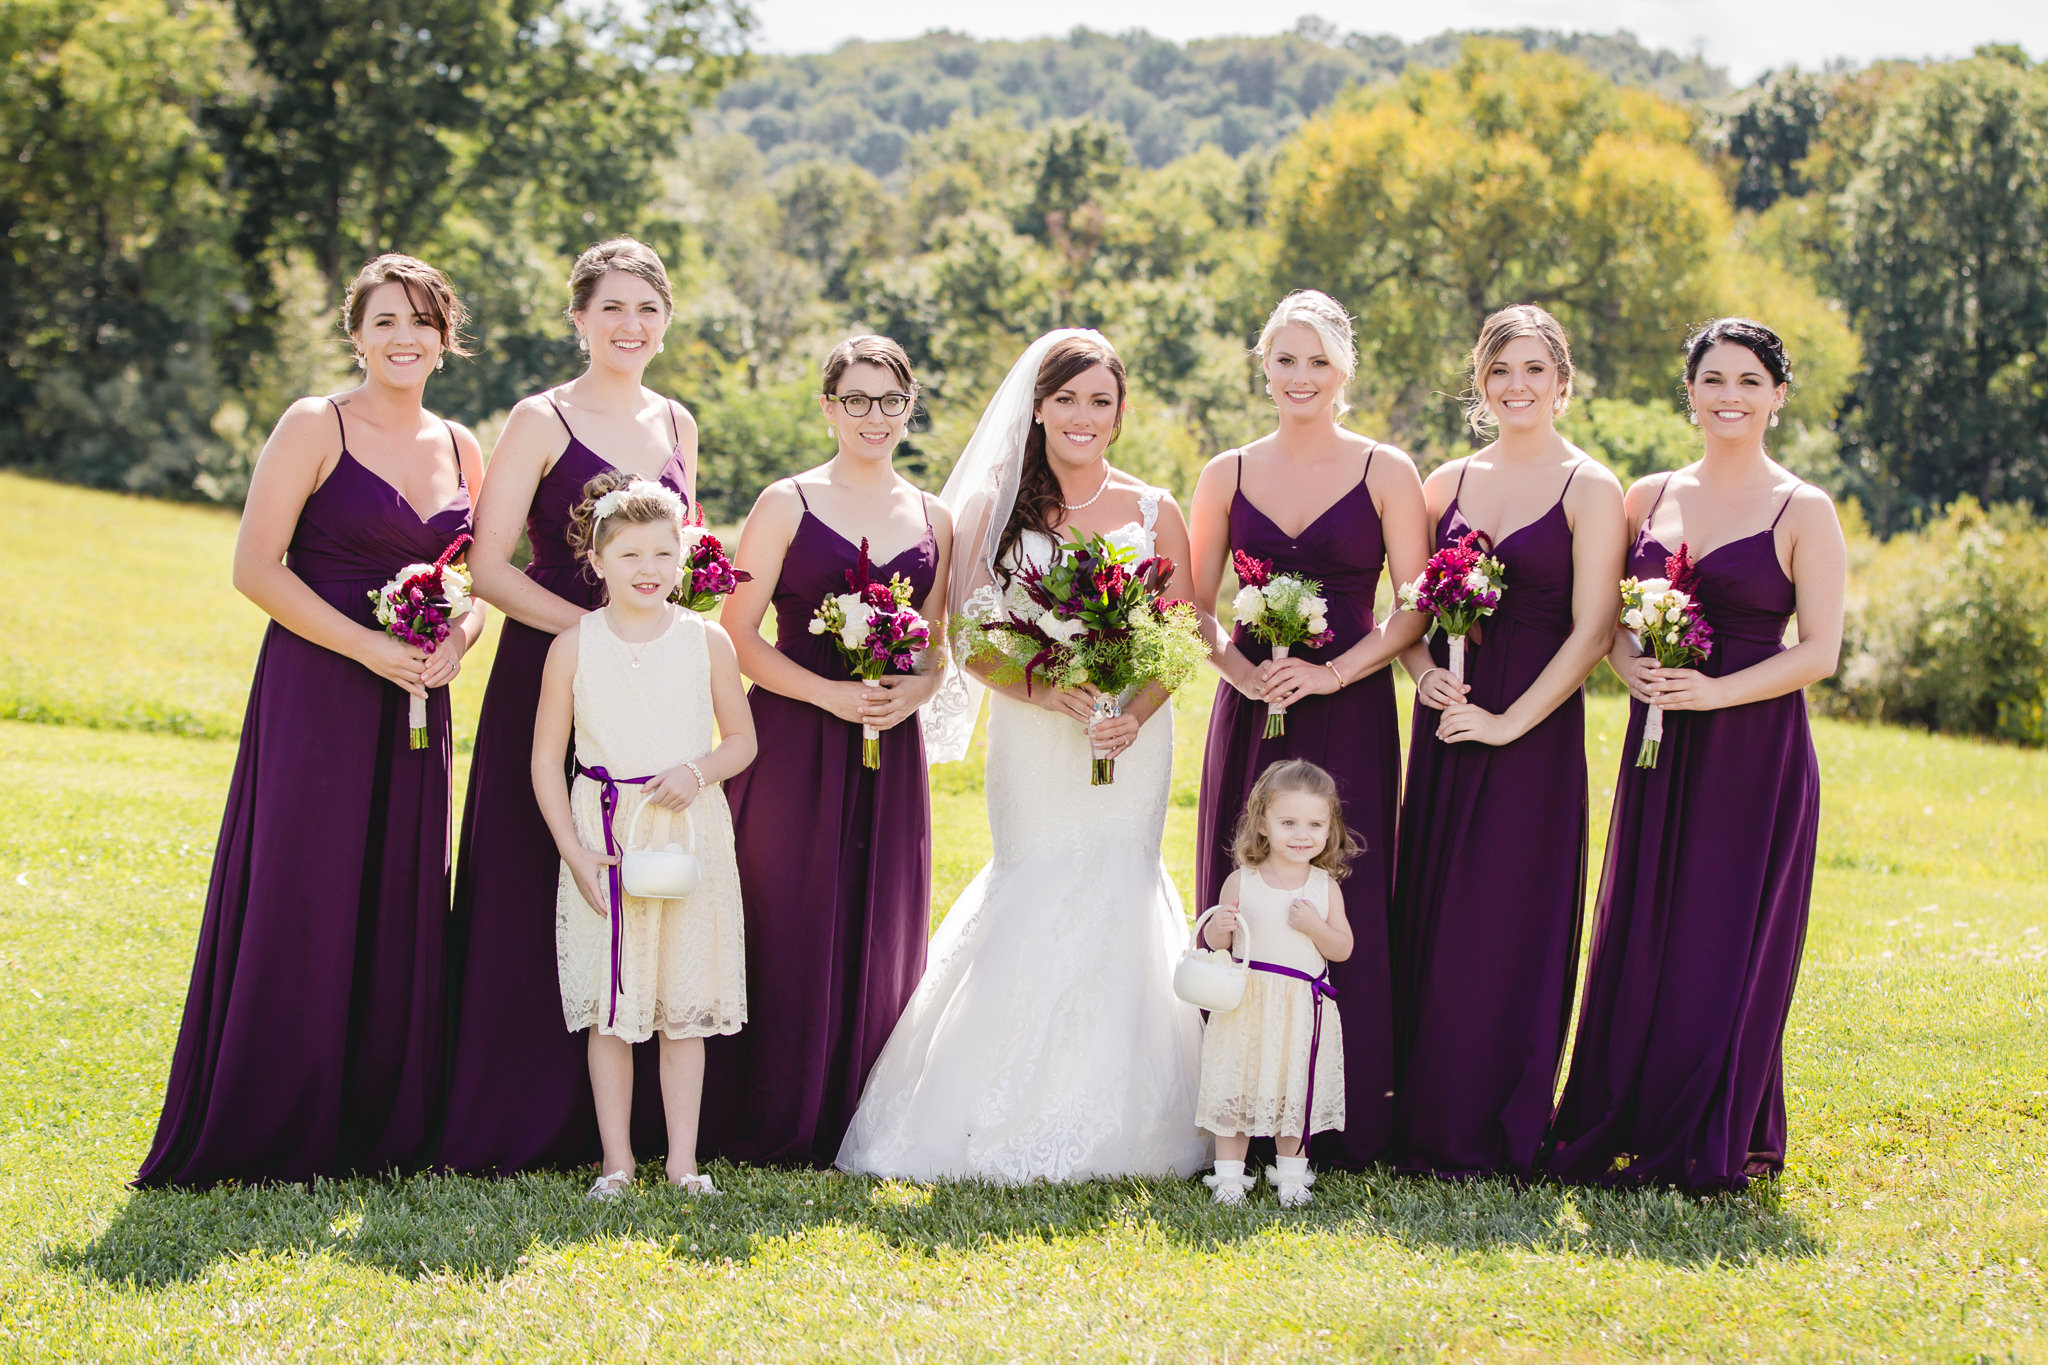 Bride with her bridesmaids before her wedding ceremony at White Barn